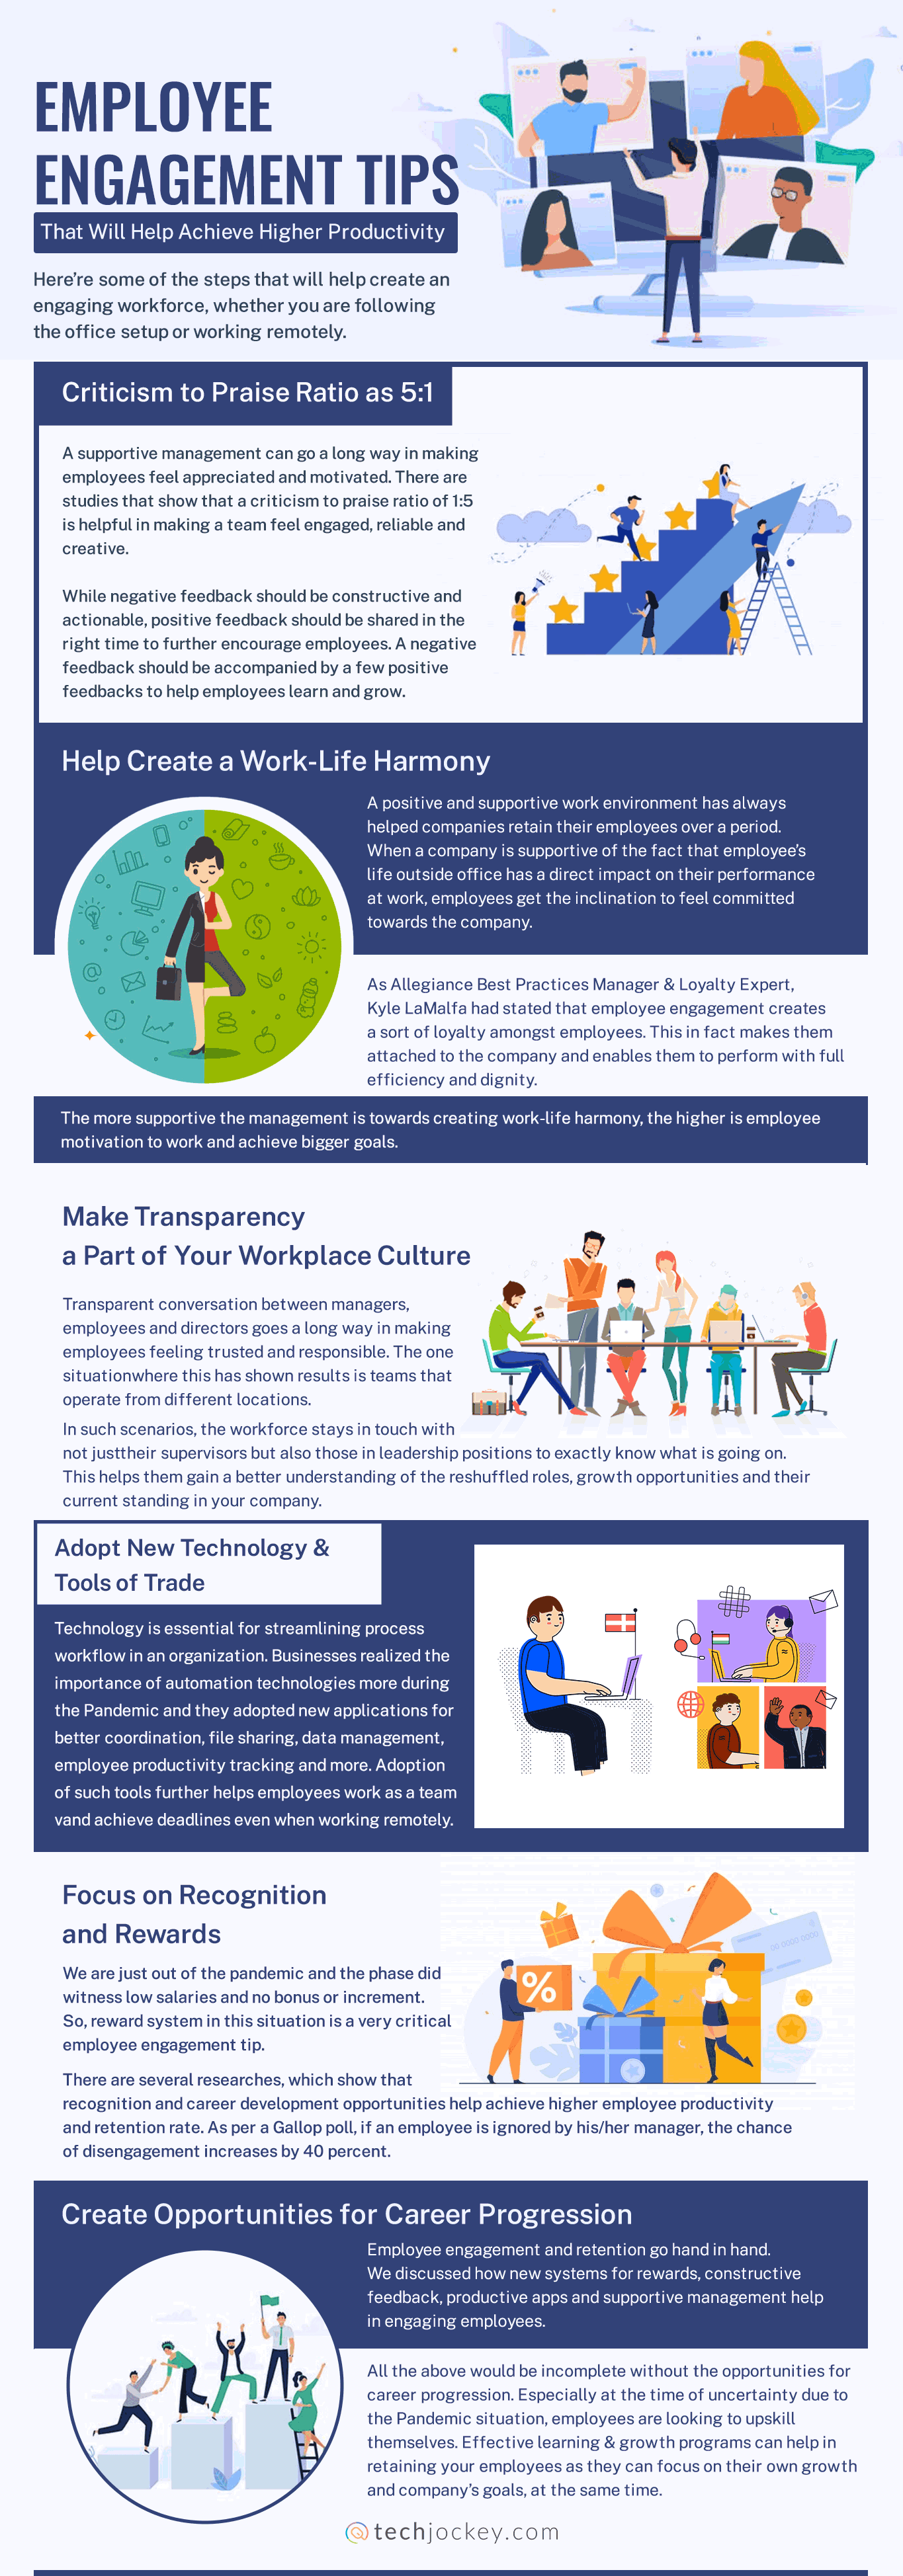 Employee Engagement Tips That Will Help Achieve Higher Productivity